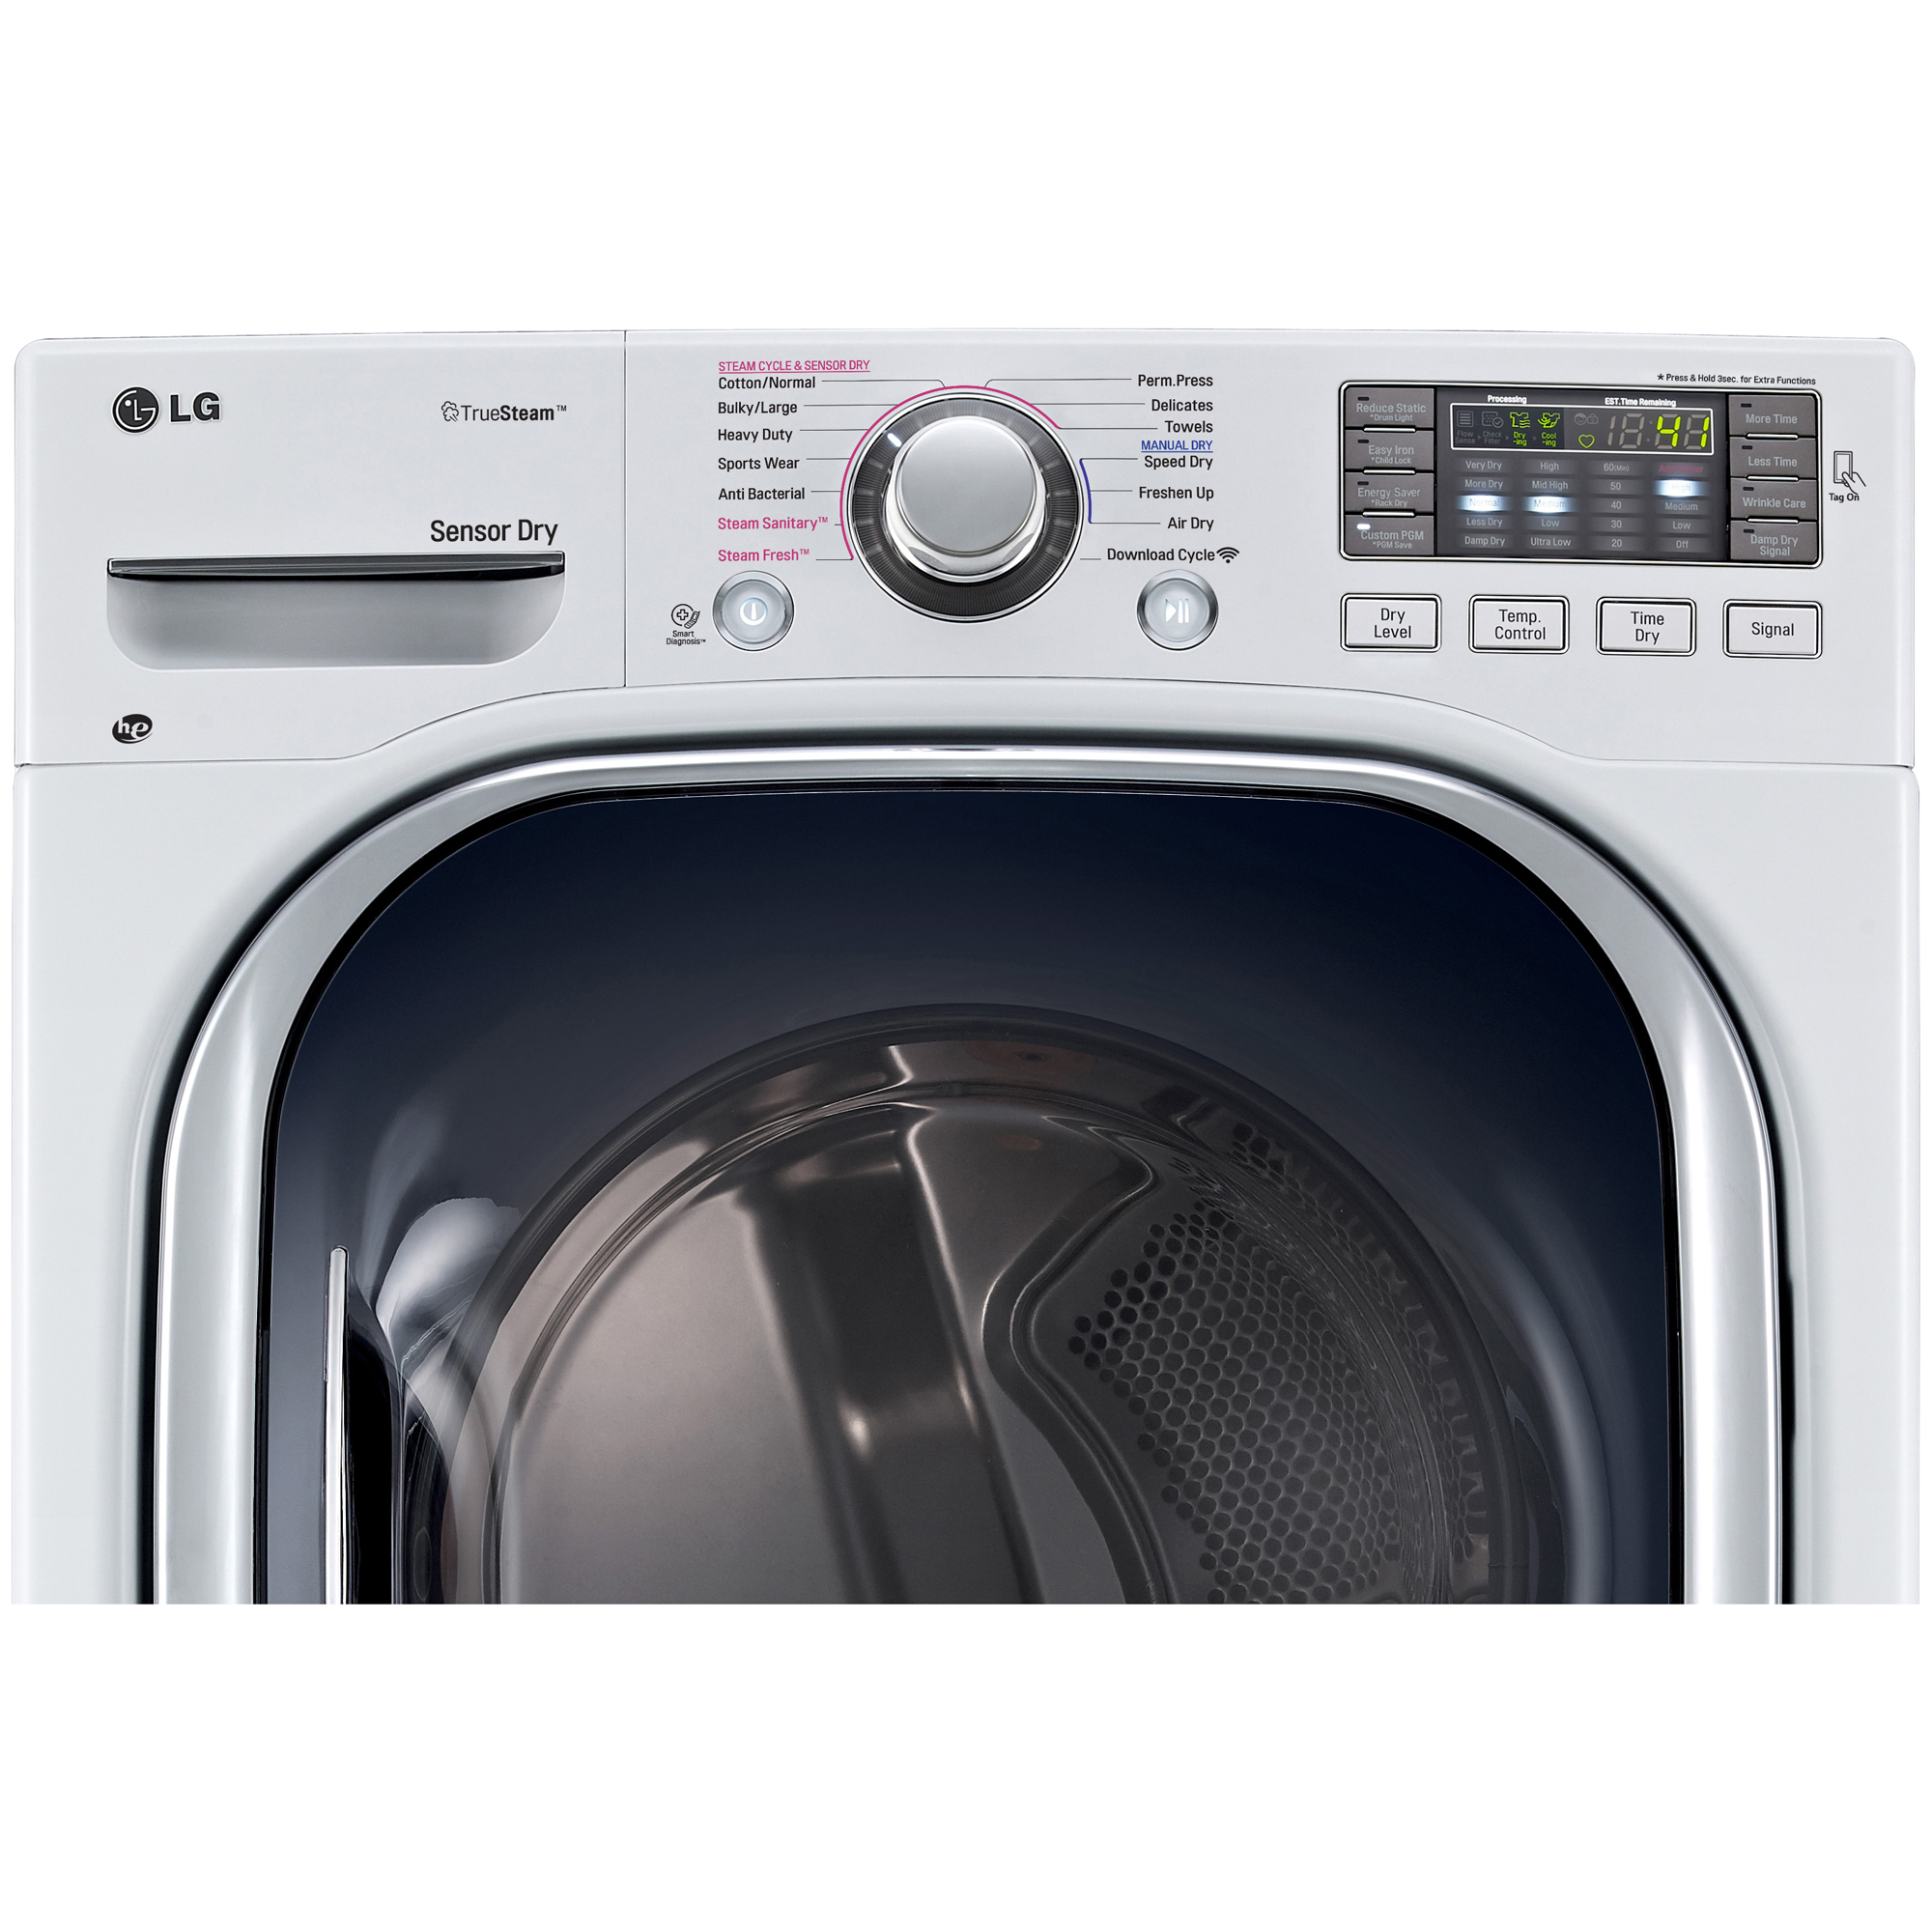 LG DLGX4271W 7.4 cu ft. Ultra Large Capacity SteamDryer™ w/ NFC Tag-On Technology – White